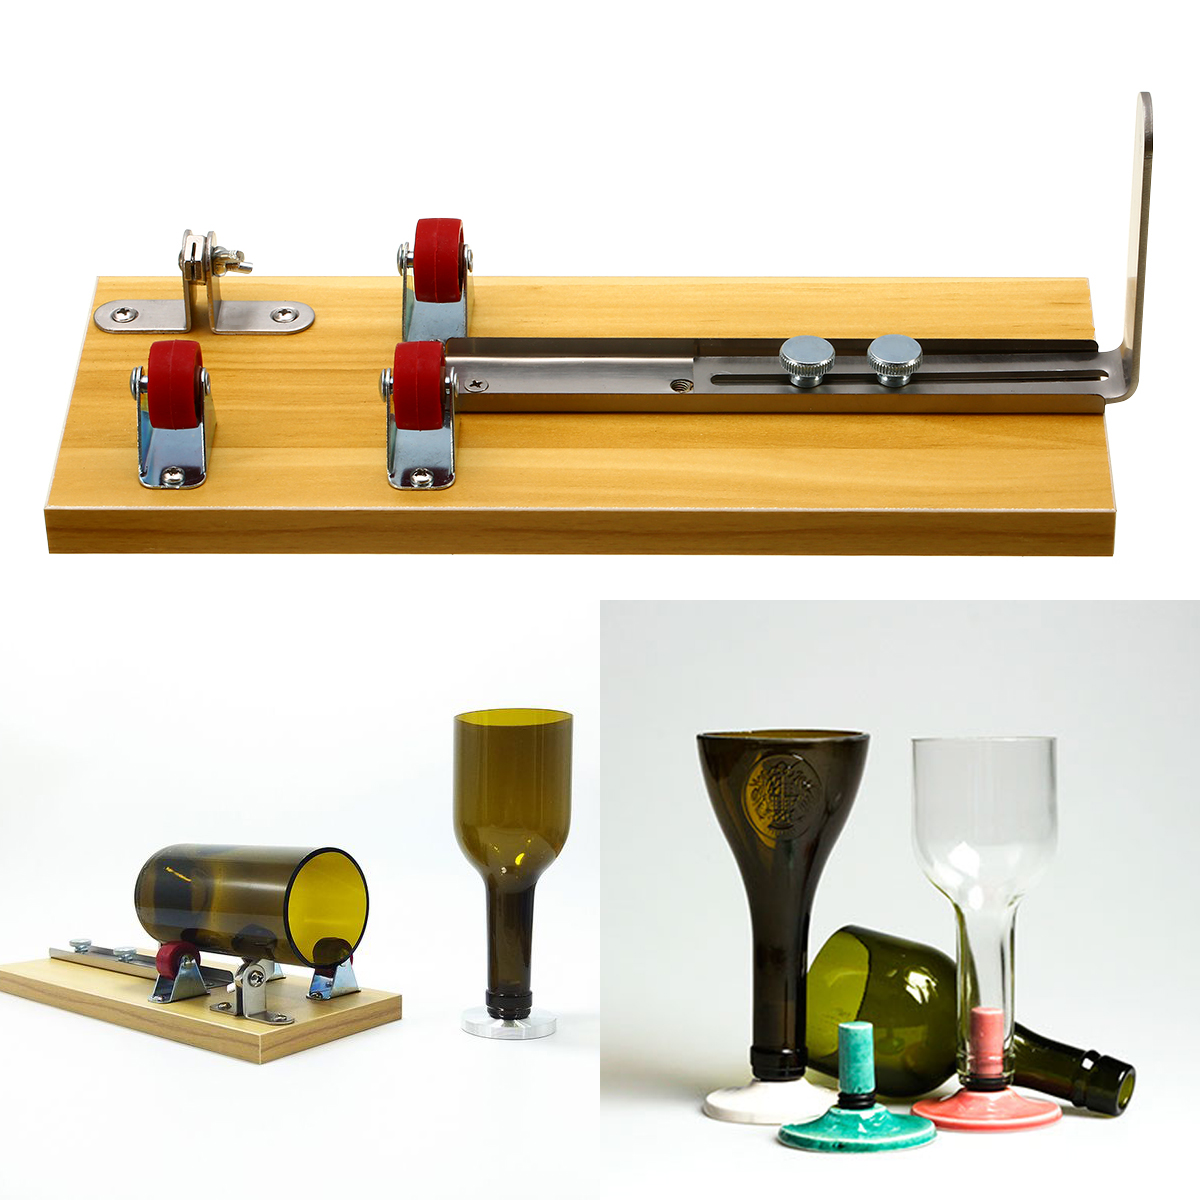 Safety Glass Bottles Cutter Machine Cutting Tool For Wine Beer Bottles Multi-function Bottle Opener DIY Tools Mayitr bottle cutter glass bottle cutter tool cutter glass machine for wine beer glass cutting tools multi function bottle opener diy